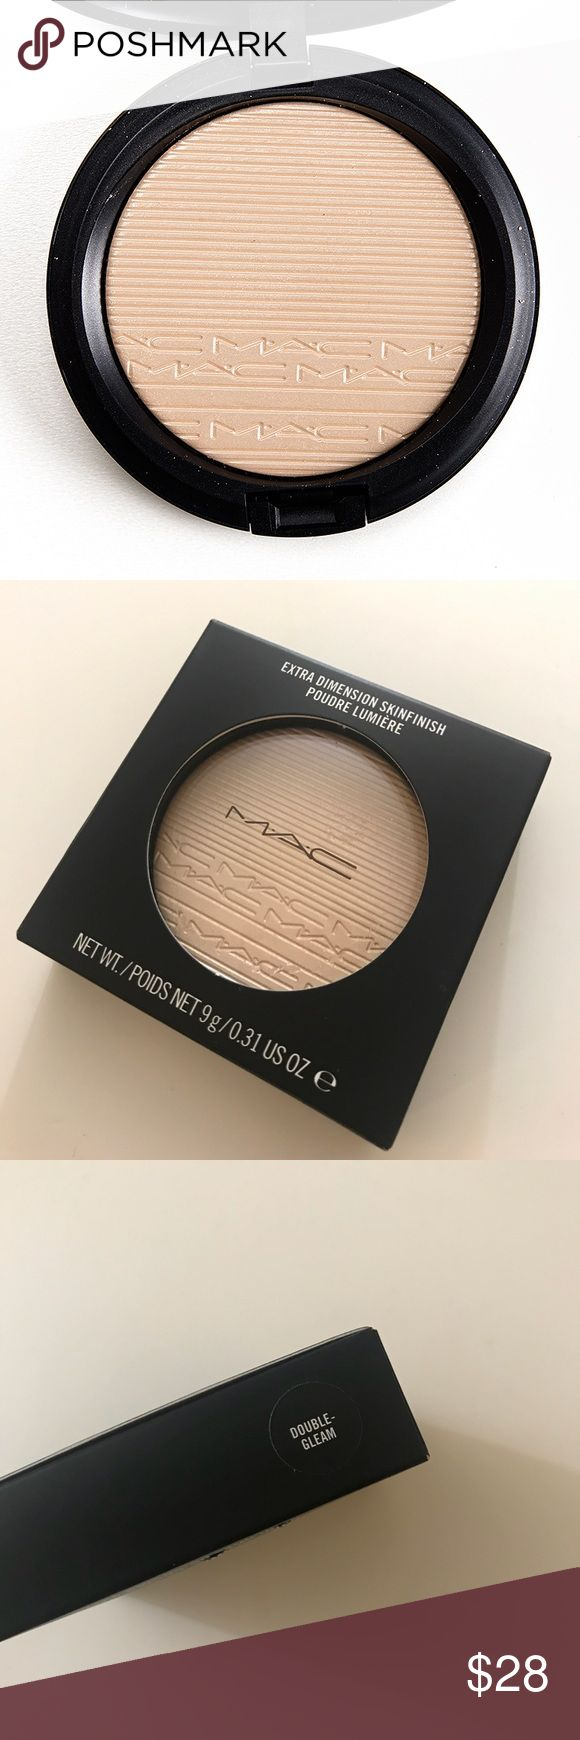 BNIB MAC double gleam extradimension highlighter Brand new in box! Completely authentic 🤗 free shipping on bundles of 3 or more items ✨ MAC Cosmetics Makeup Luminizer